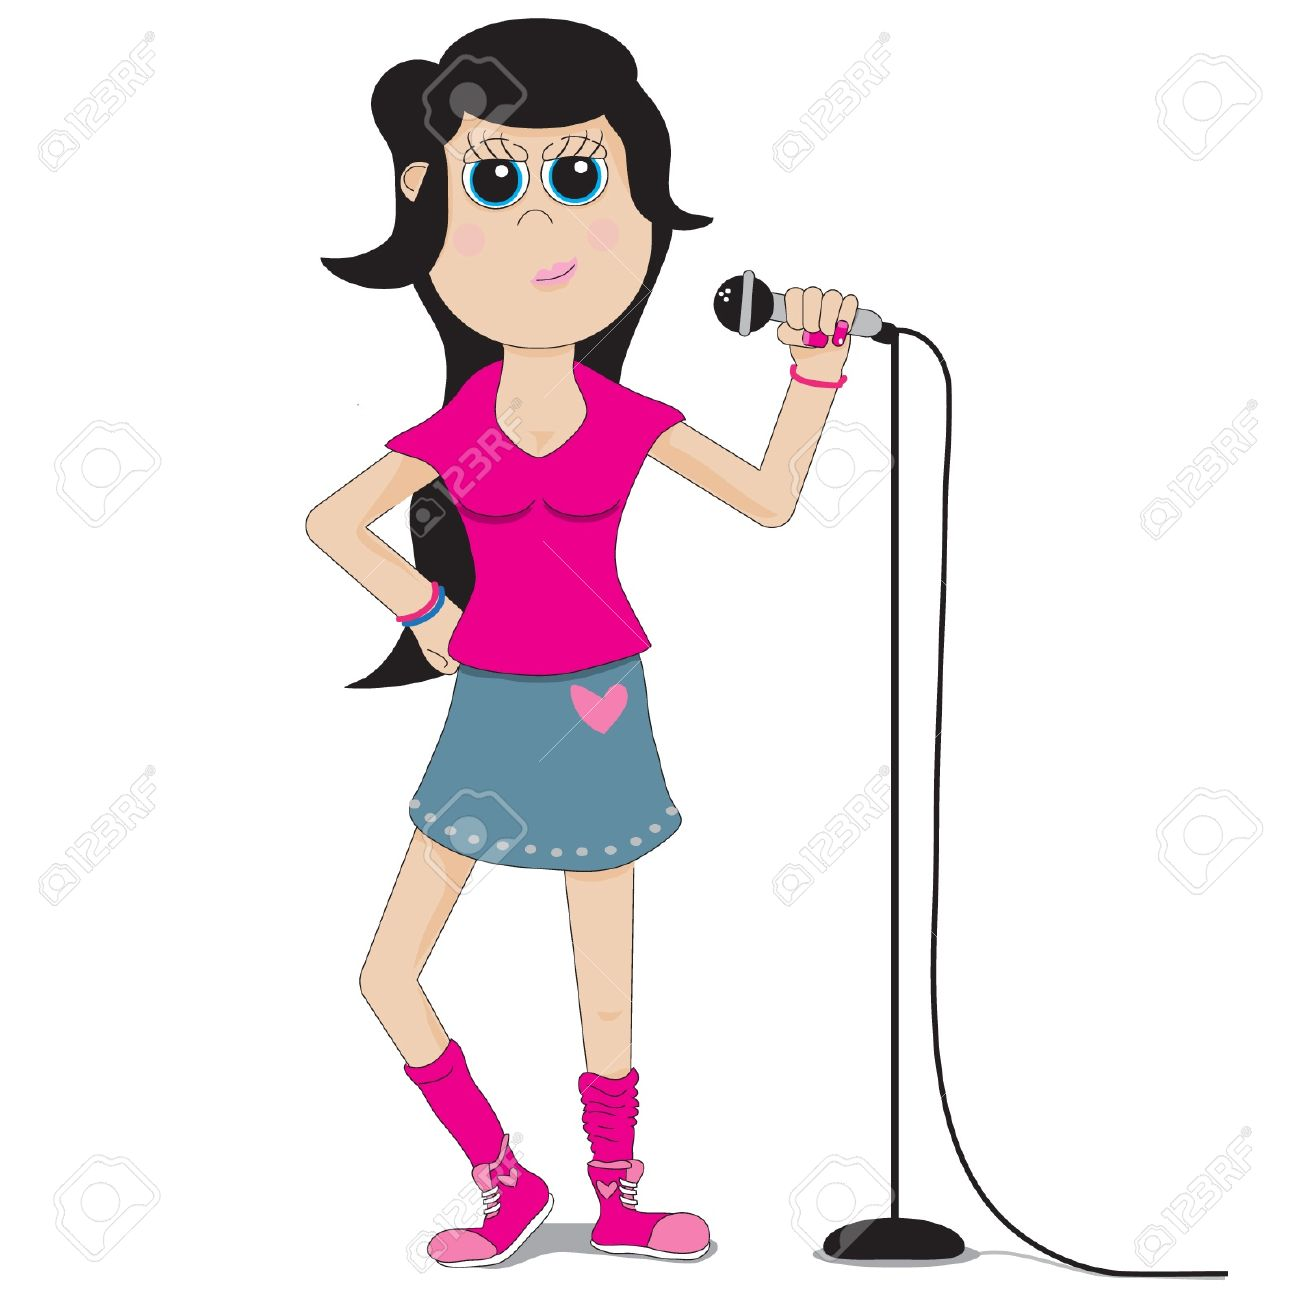 Cartoon Teen Girl Singer Wearing A Pink -Cartoon teen girl singer wearing a pink shirt holding a microphone on a  microphone stand Stock-7